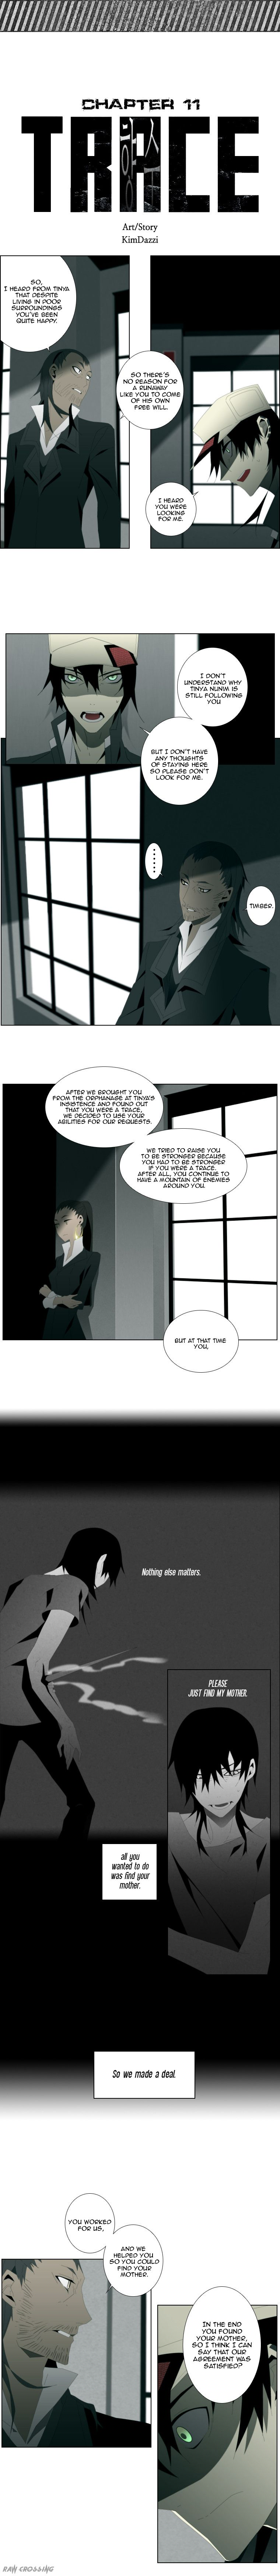 Trace: Perfume 11 Page 2